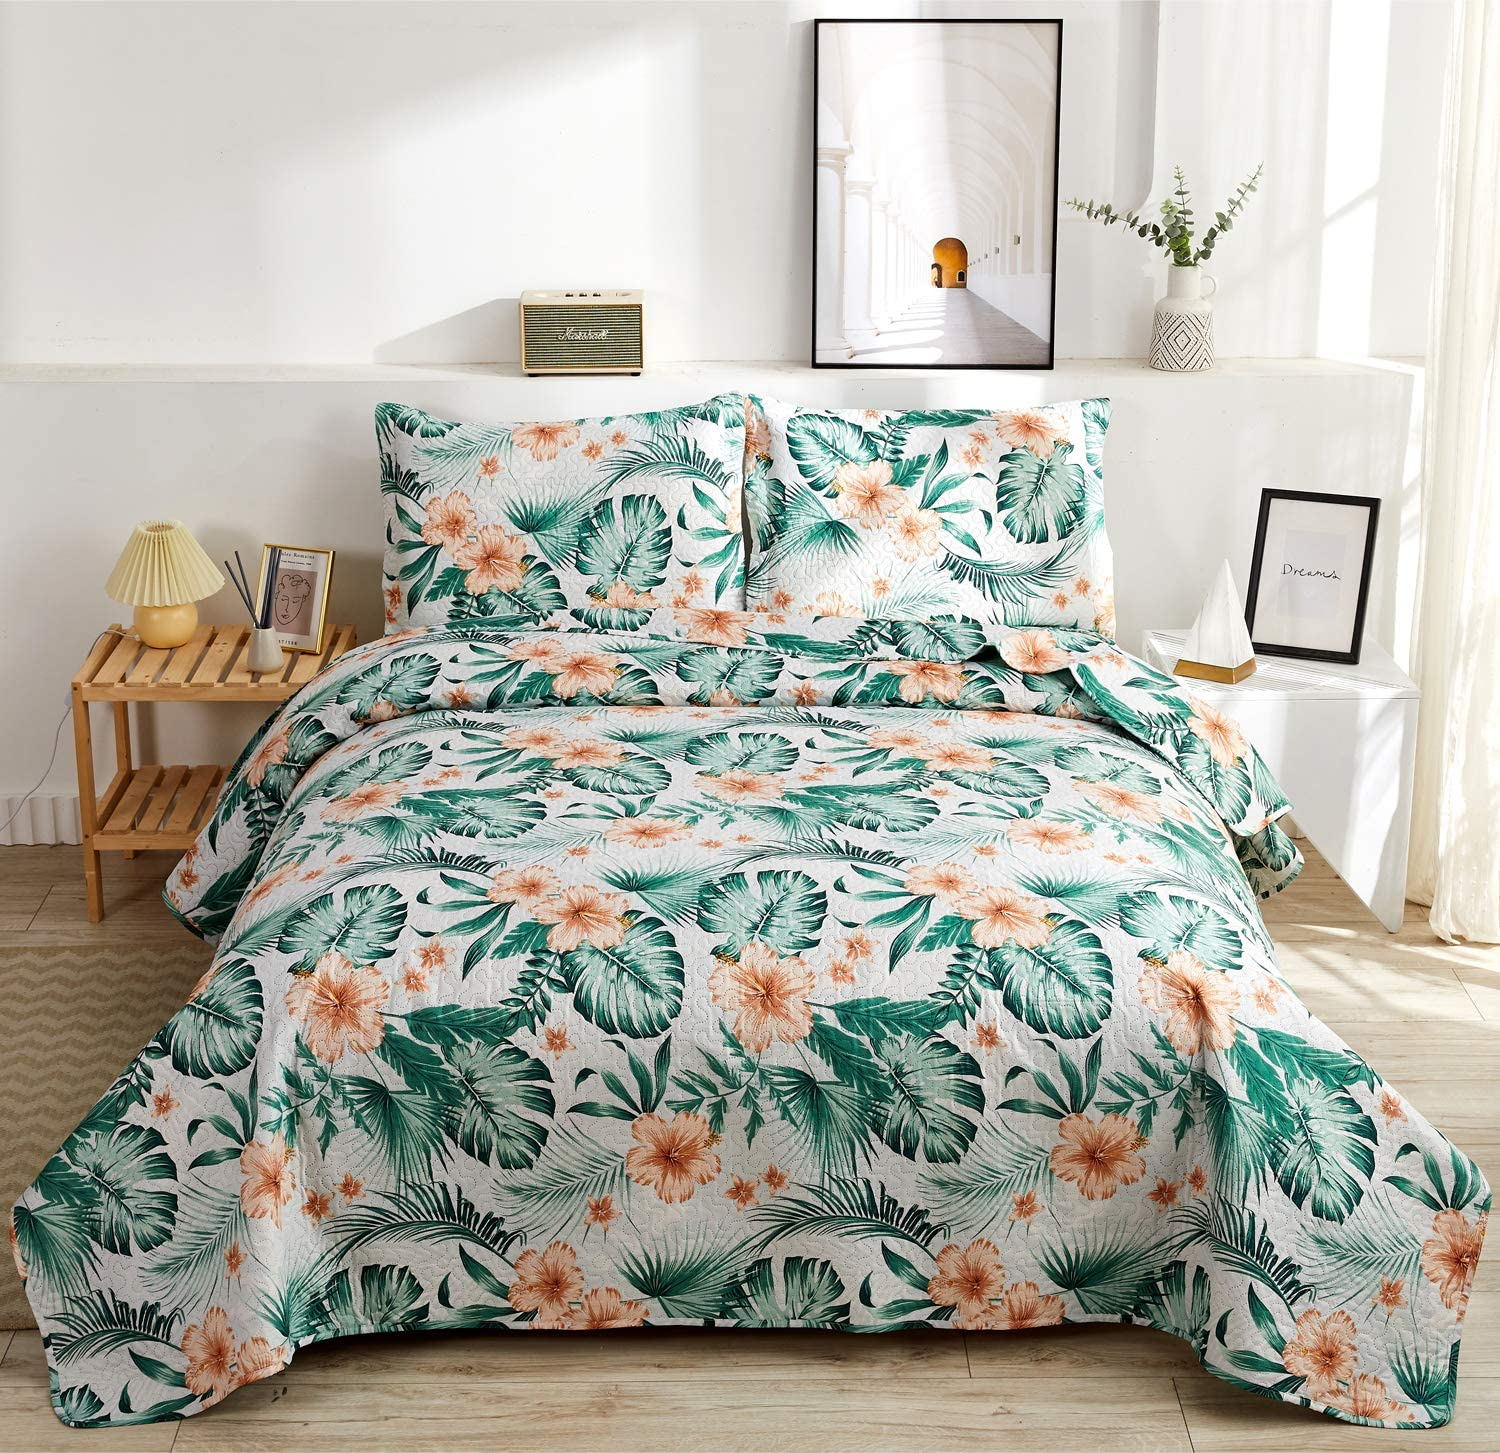 Rainforest Leaves Quilt Set King Size Hibiscus Flower Green Palm Leaf Bedding Set Lightweight Tropical Bedspread Coverlet with Sham Soft Breathable Bed Set, 1 Quilt and 2 Pillowshams